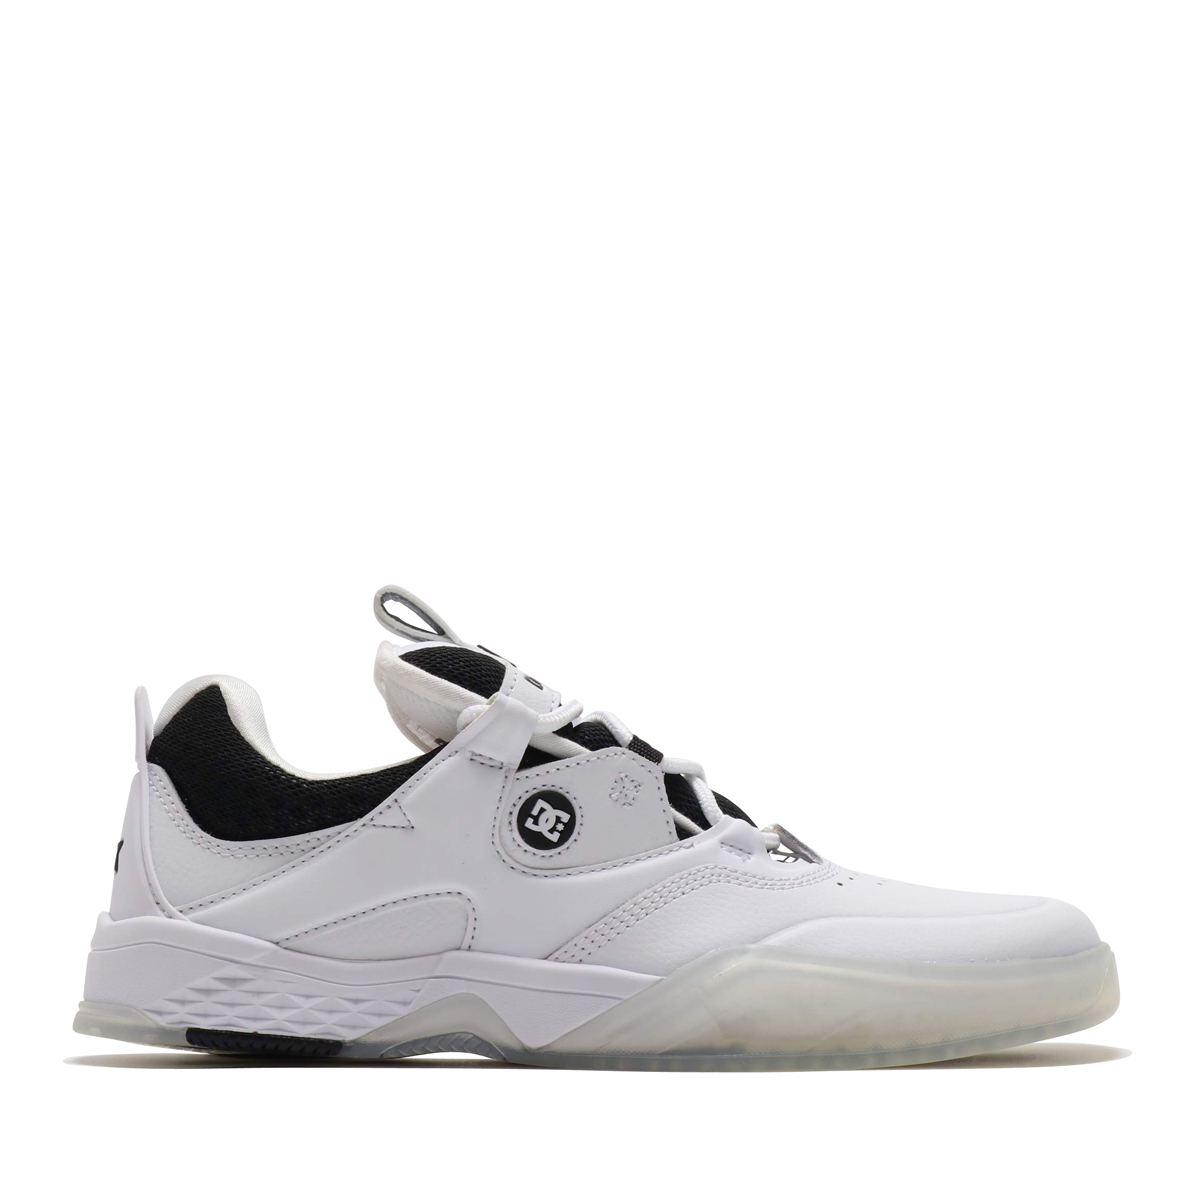 DC SHOES KALIS S MANOLO(WHITE)(ディーシーシューズ カリス S マノロ)【メンズ】【スニーカー】【19SS-I】